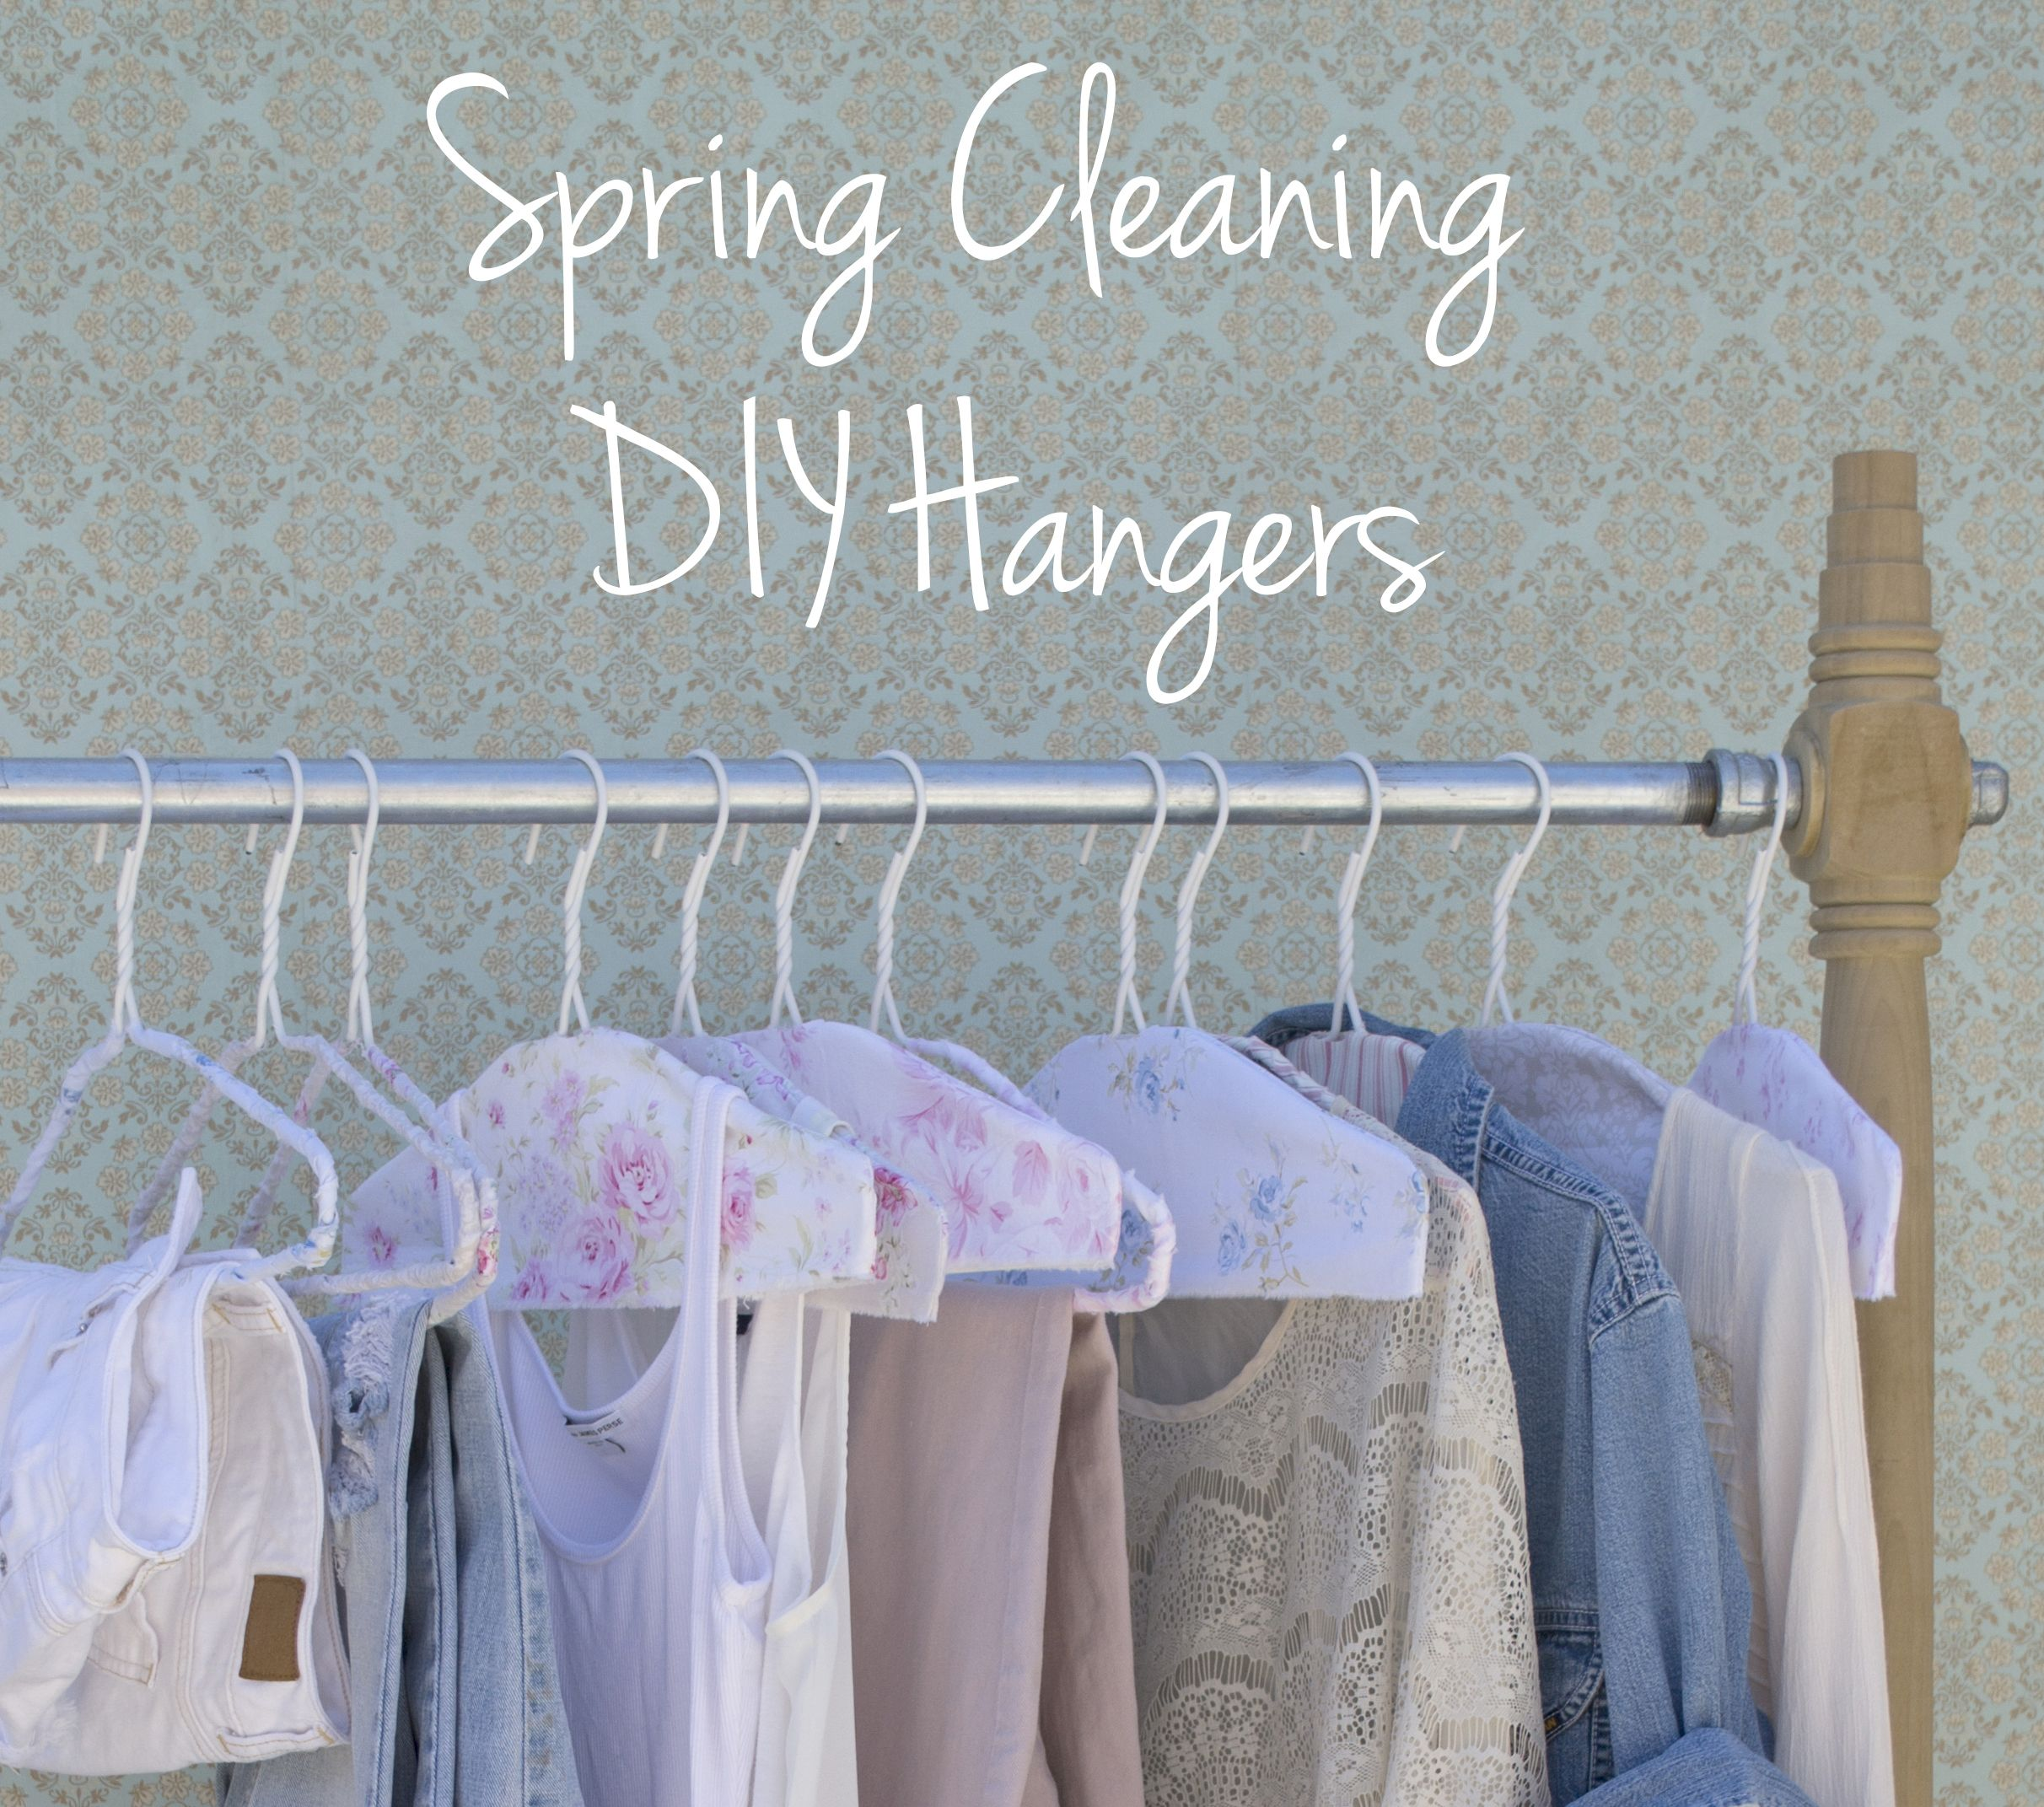 Freshen up your closet this spring with this simple DIY